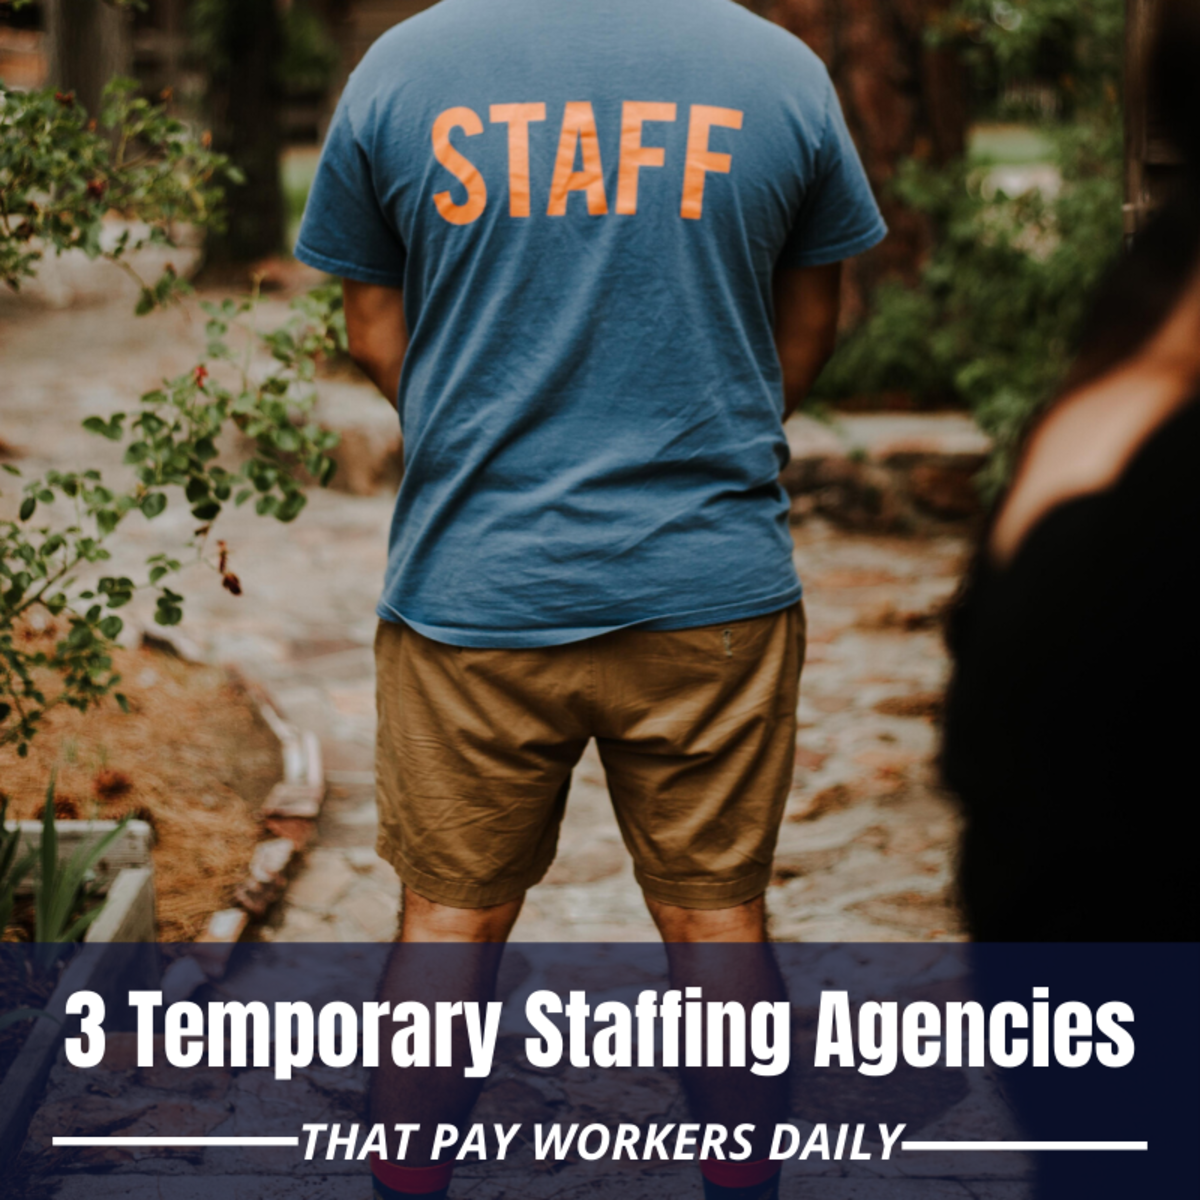 If you need money fast, these staffing agencies can connect you with temporary work that pays daily.